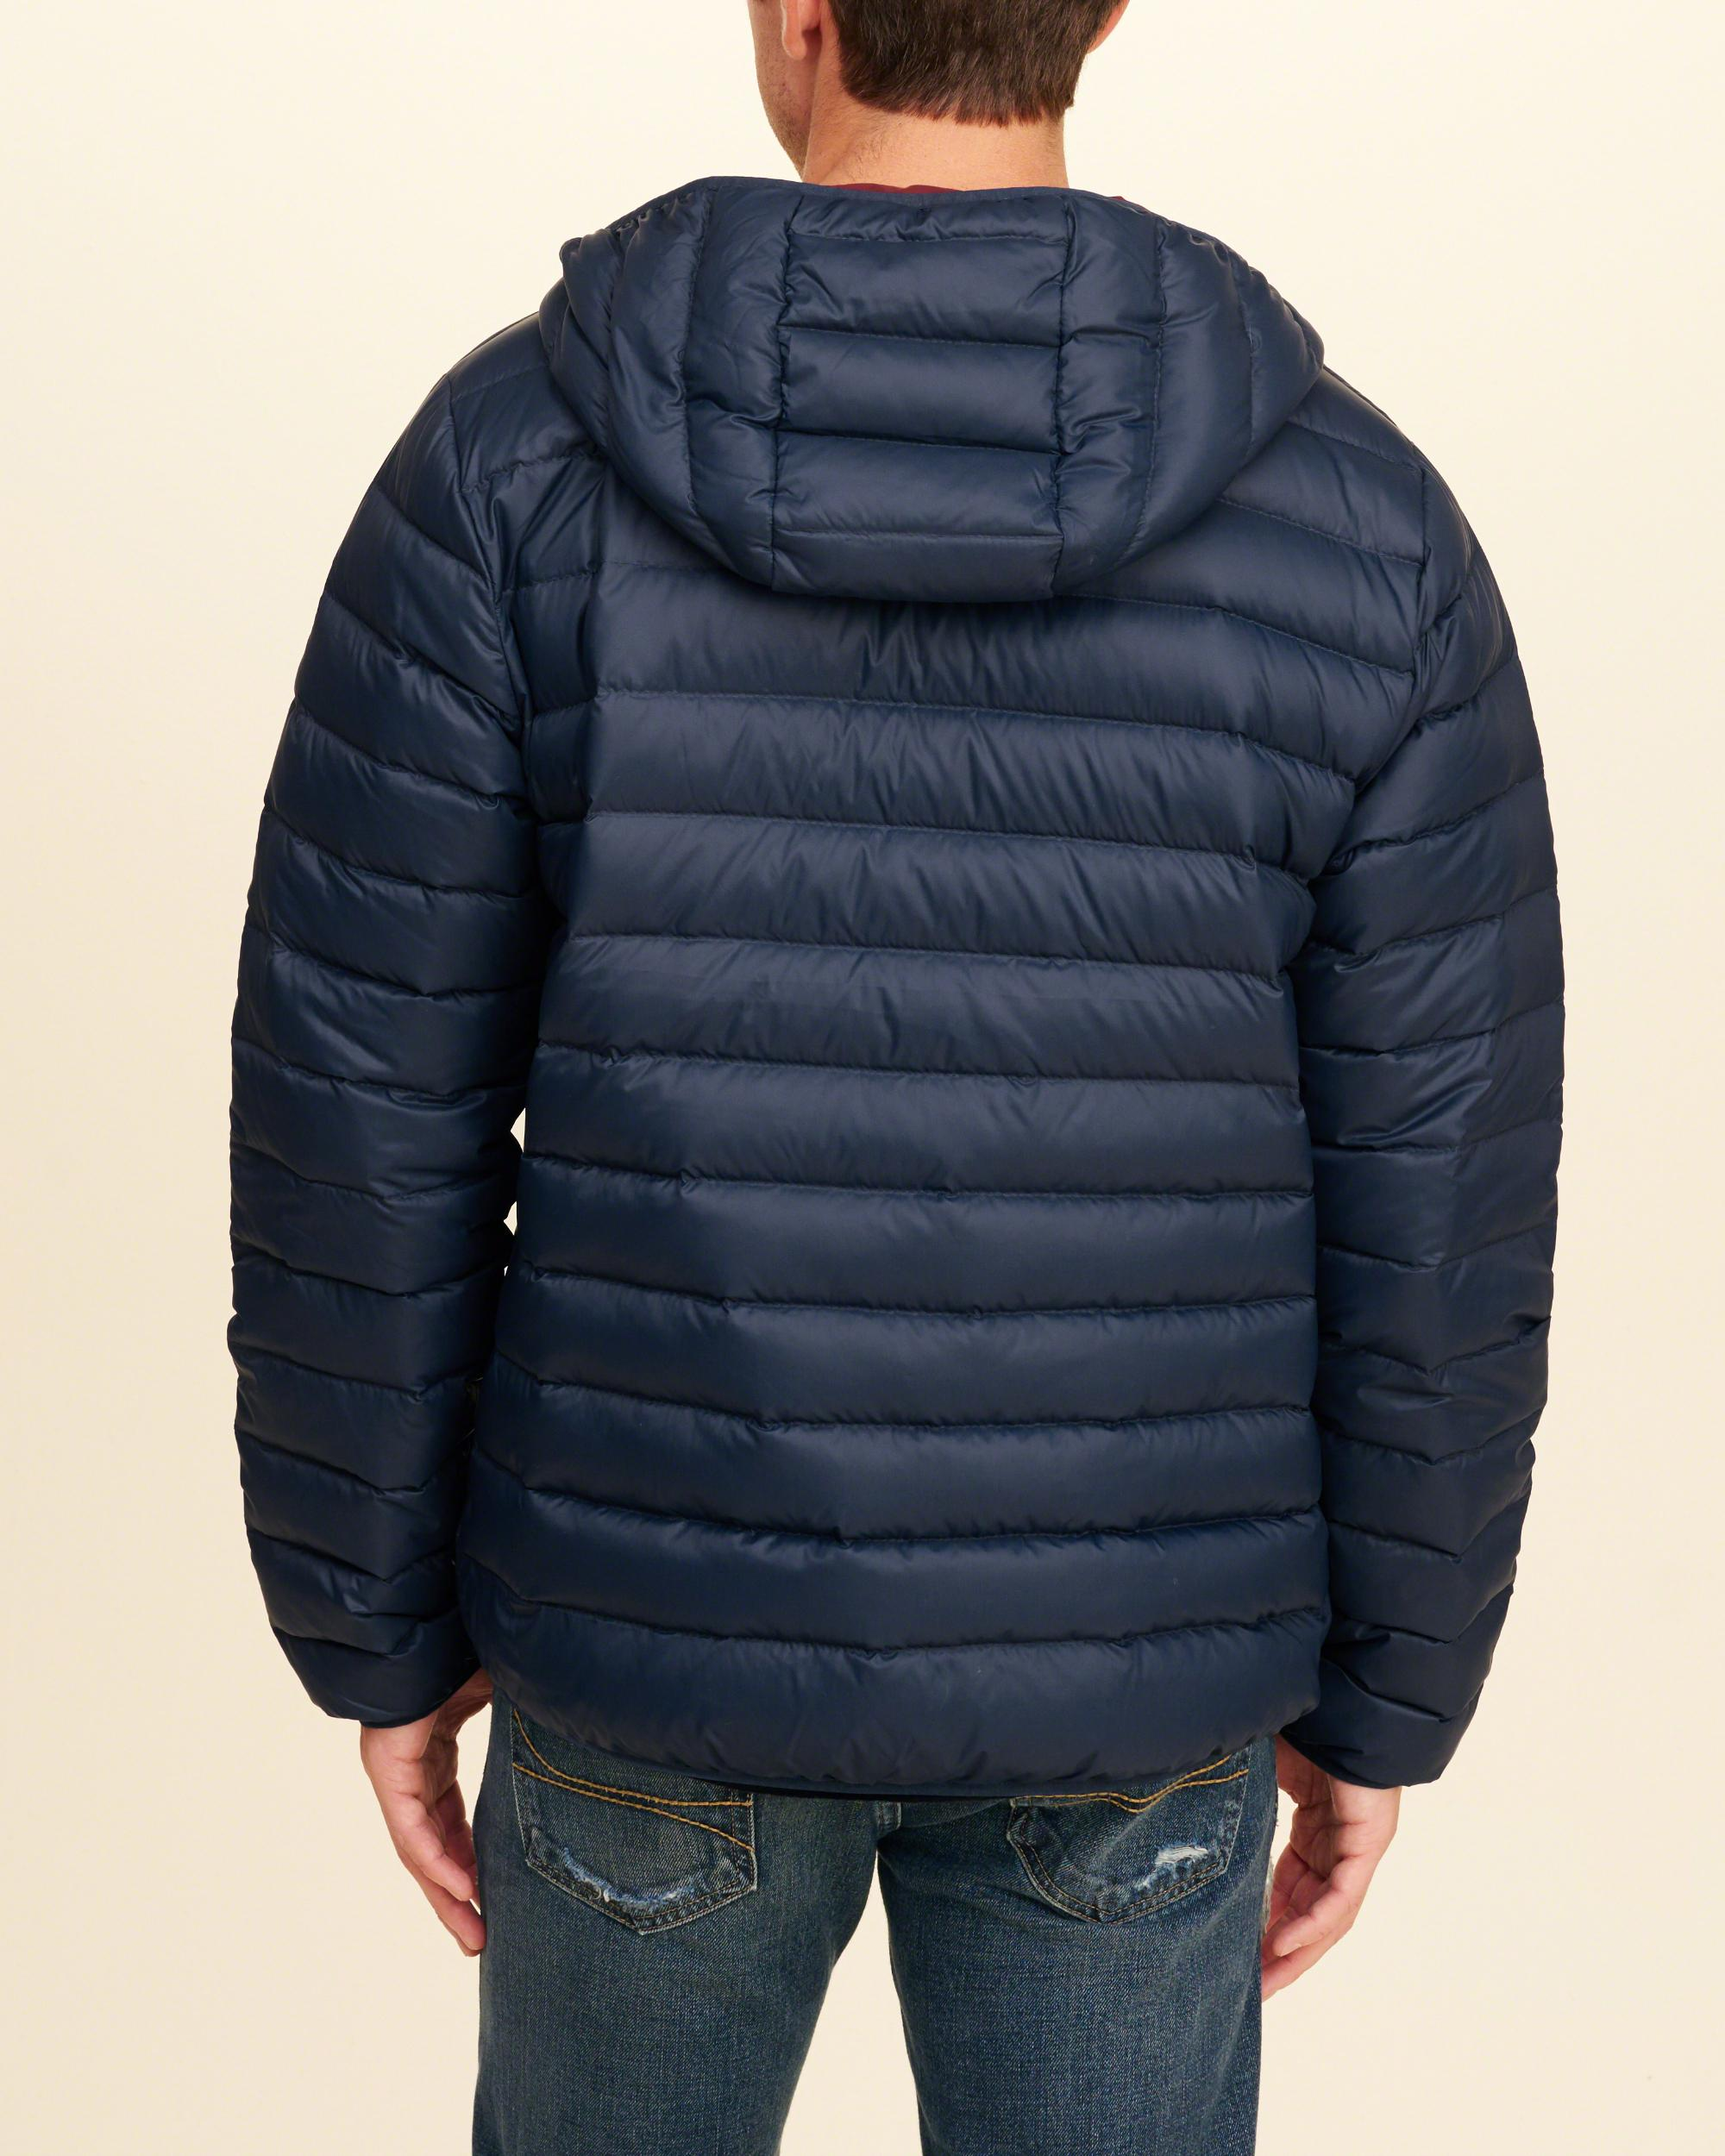 Hollister Synthetic Guys Lightweight Down Puffer Jacket From Hollister in Navy (Blue) for Men